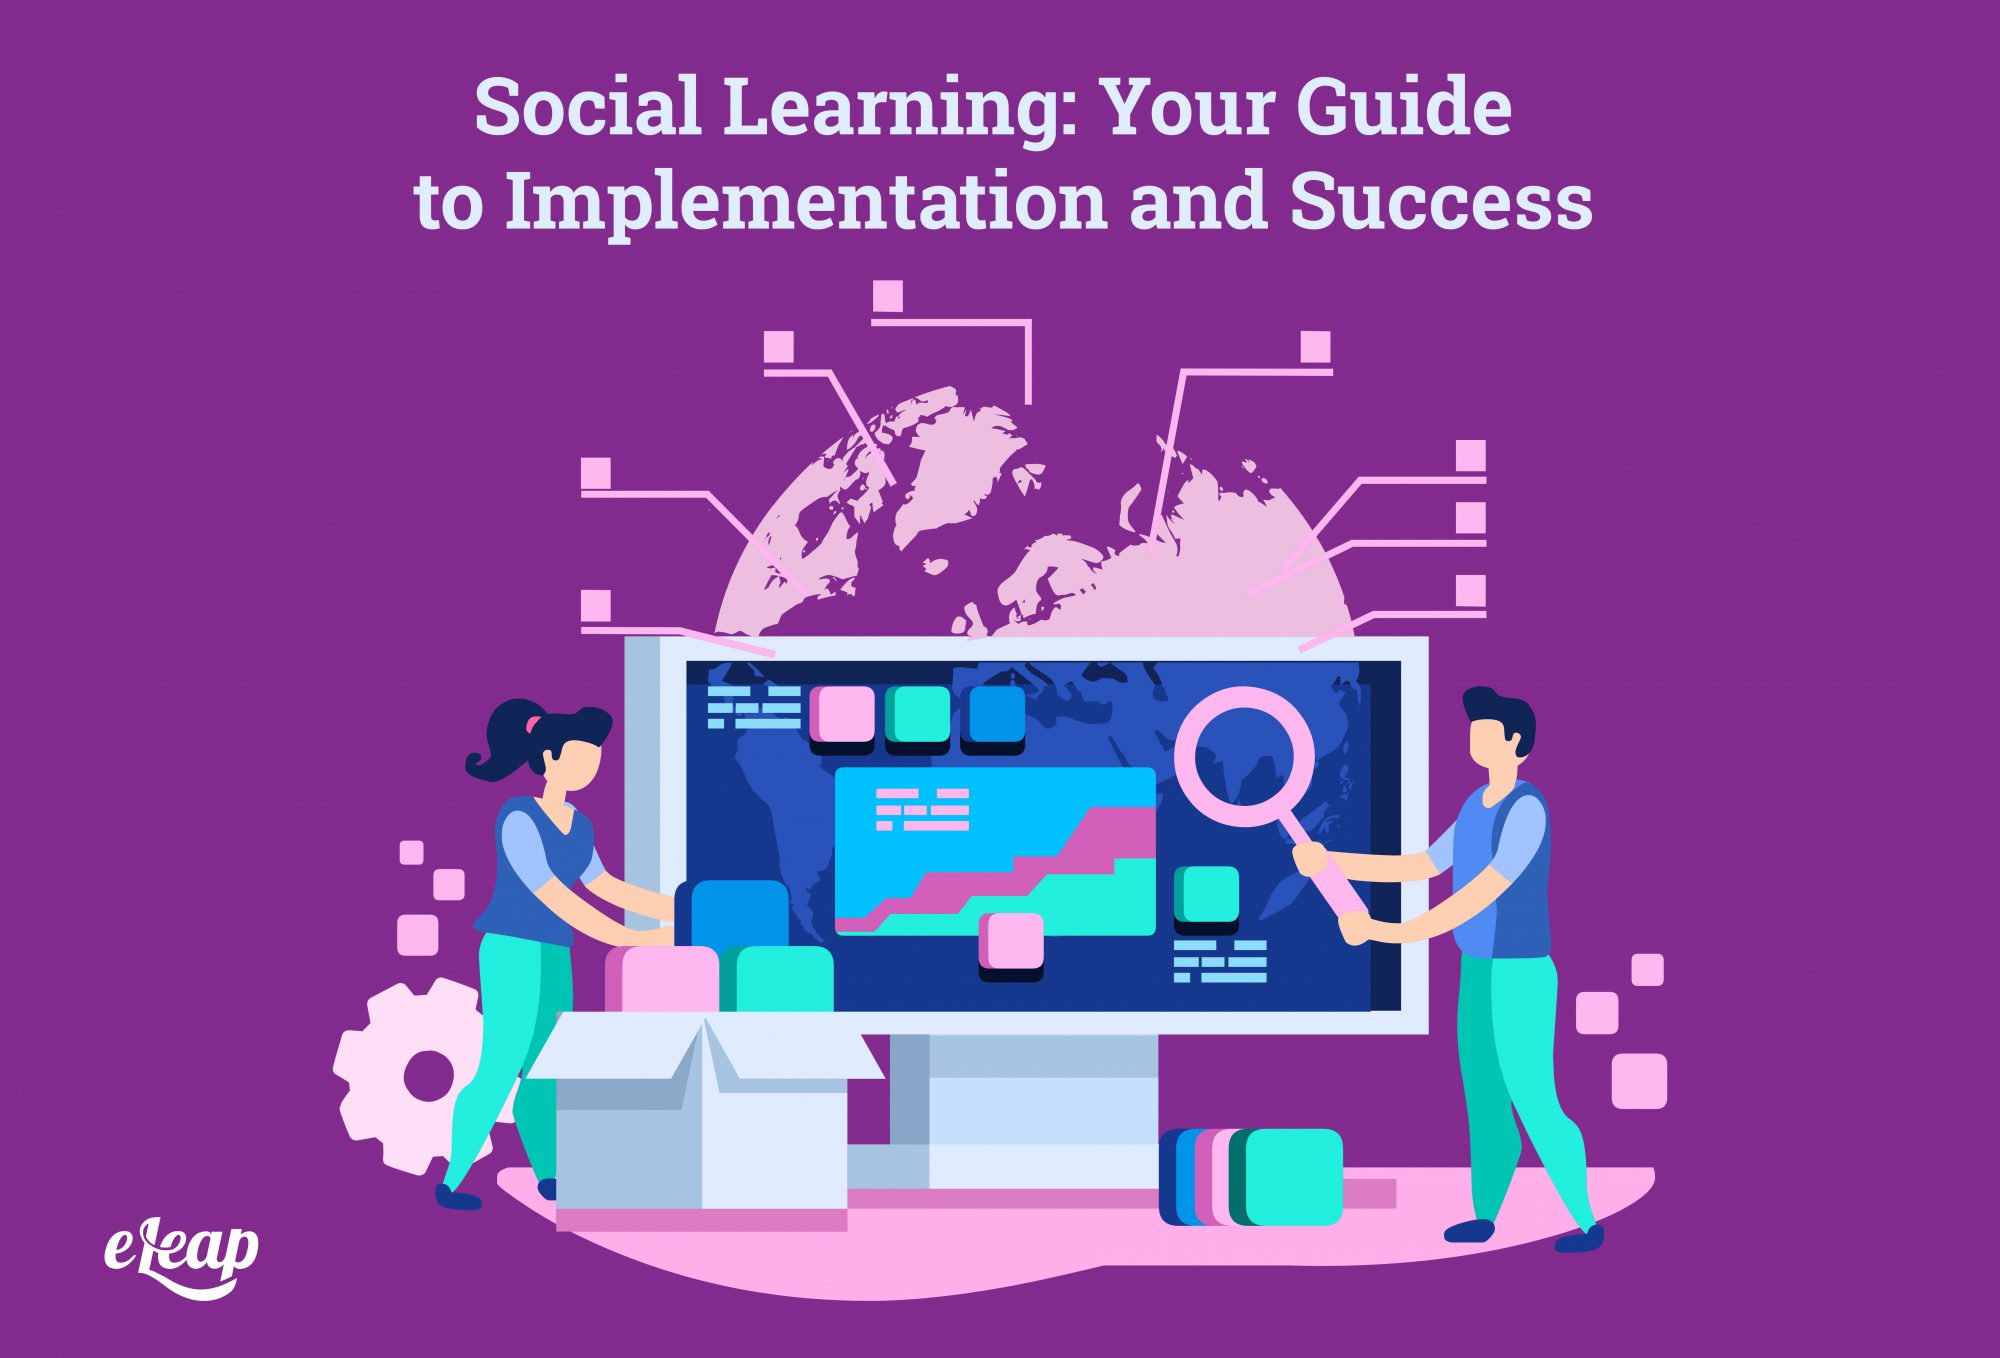 Social Learning: Your Guide to Implementation and Success